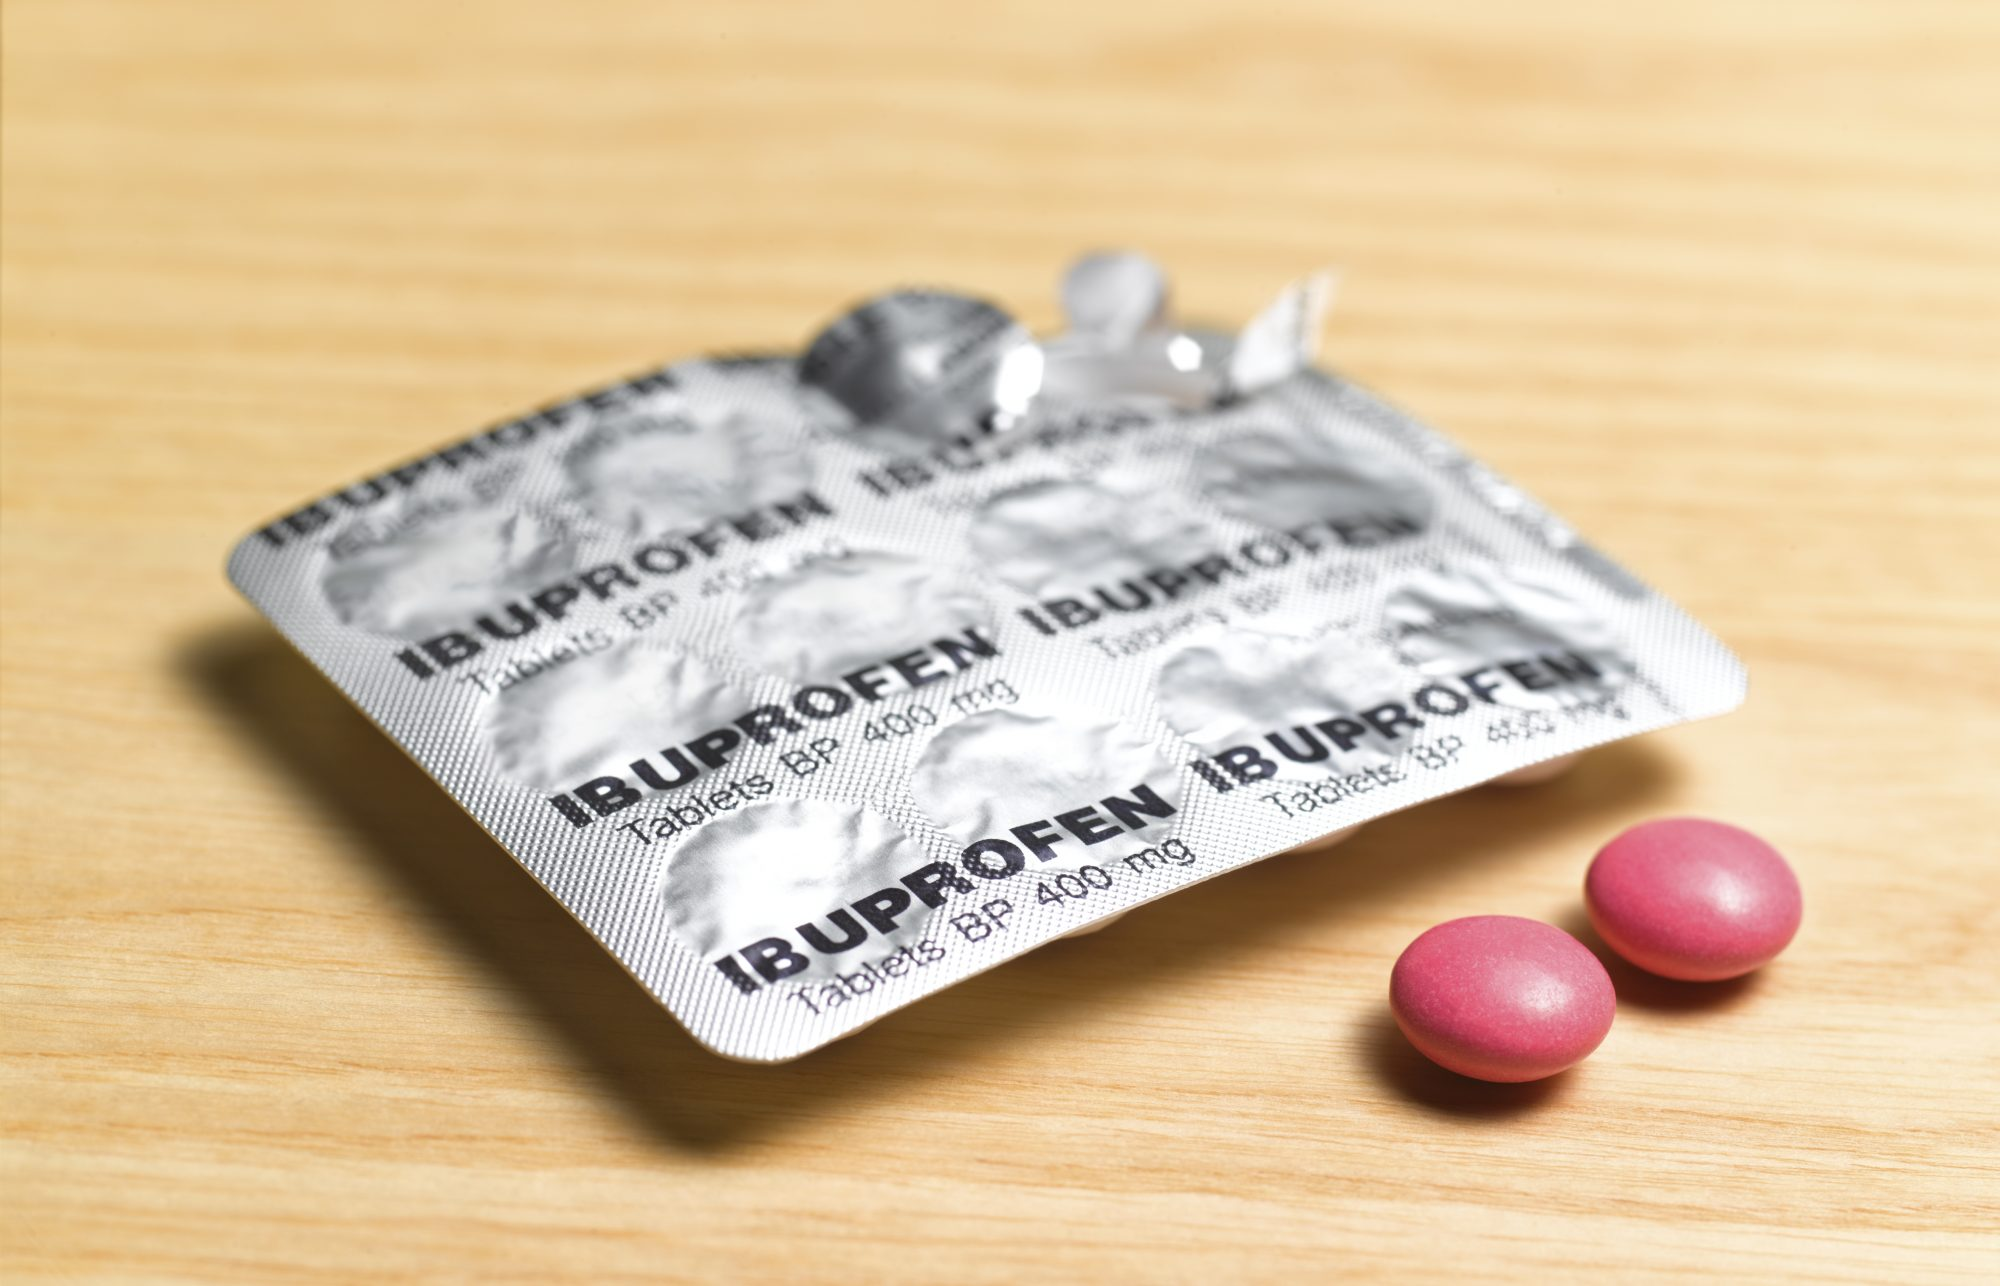 Read This Before Taking Ibuprofen for Pain Relief